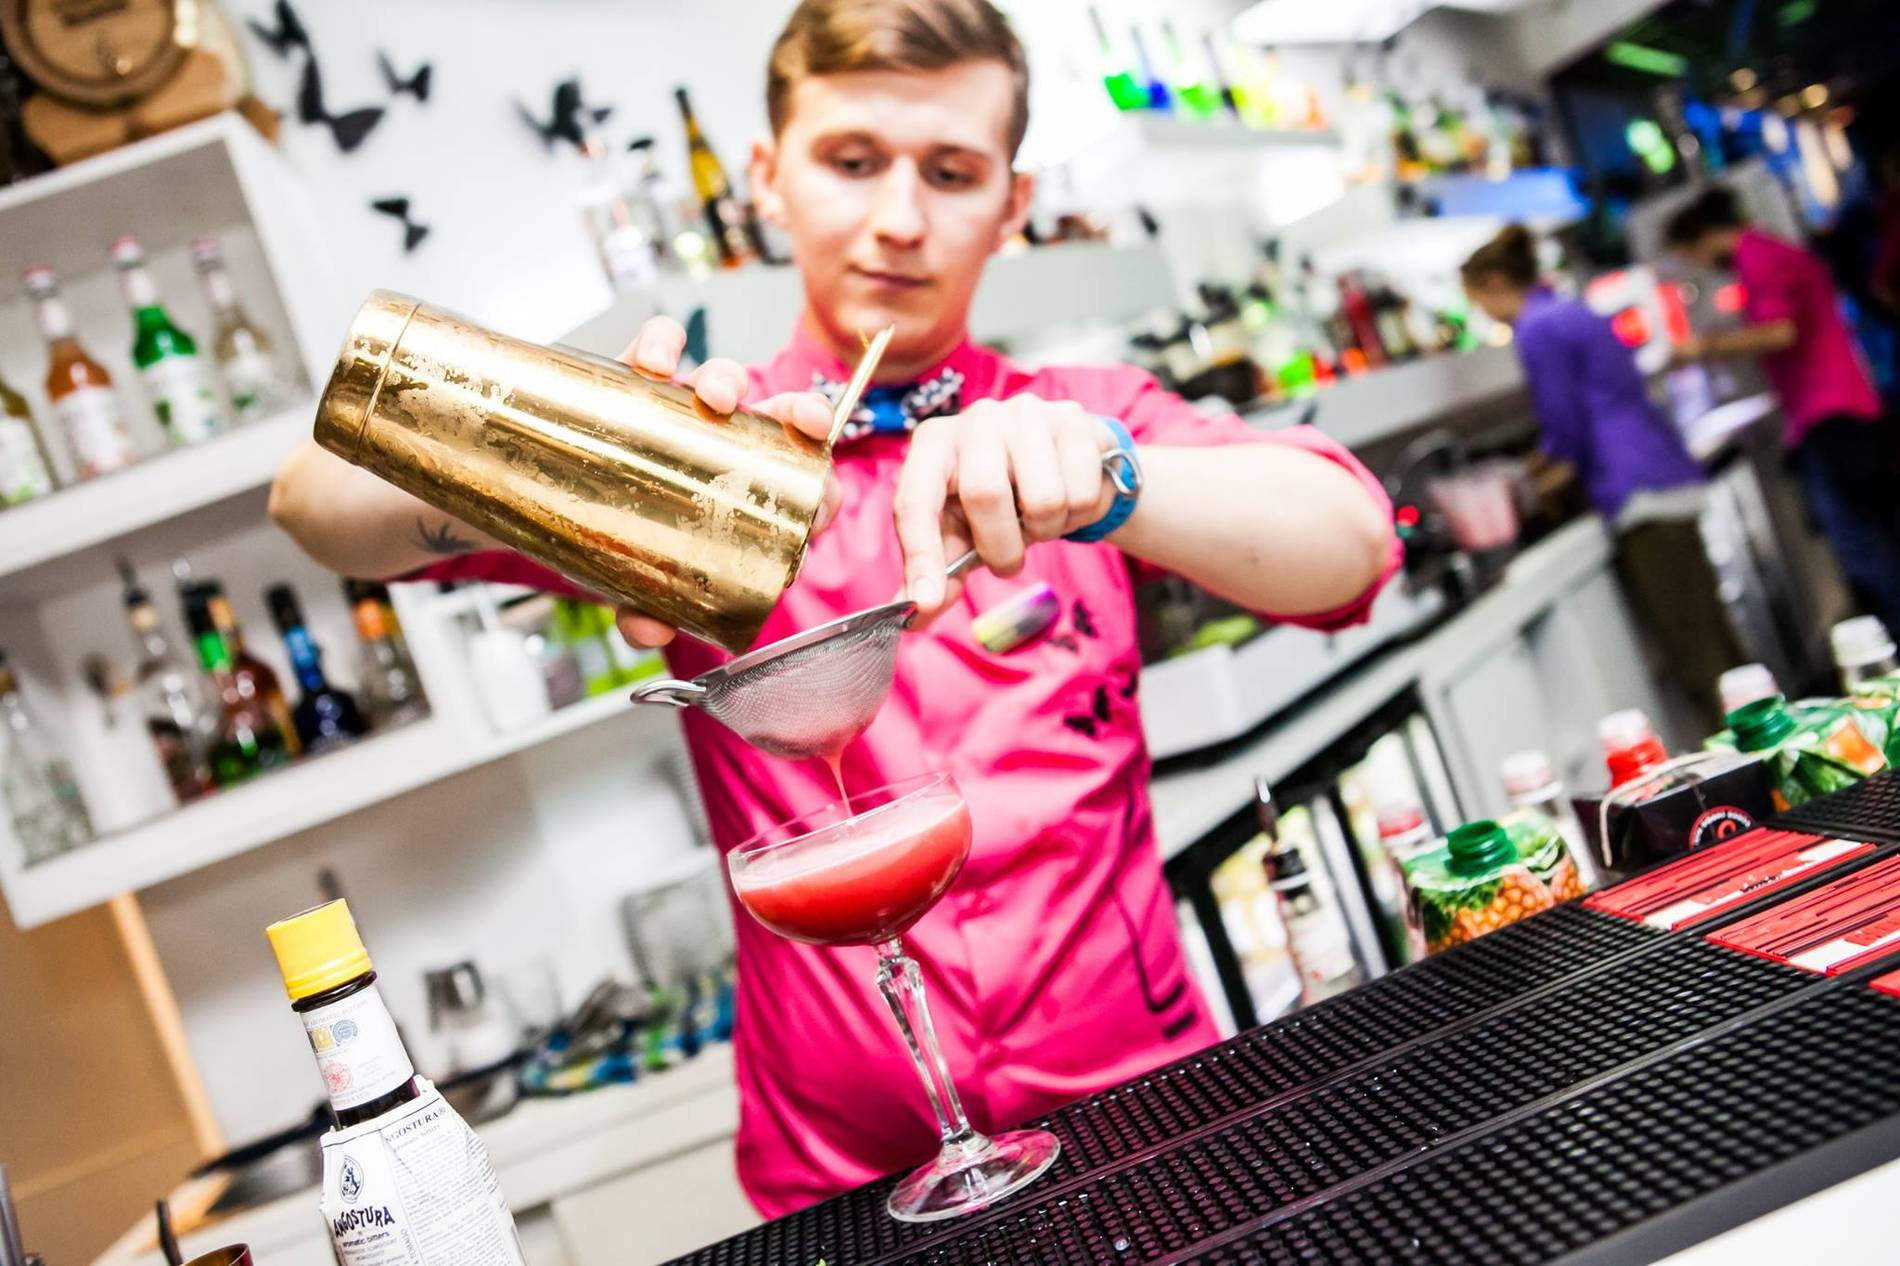 Bartender pouring a cocktail at the Butterfl Lounge in Tallinn, Estonia